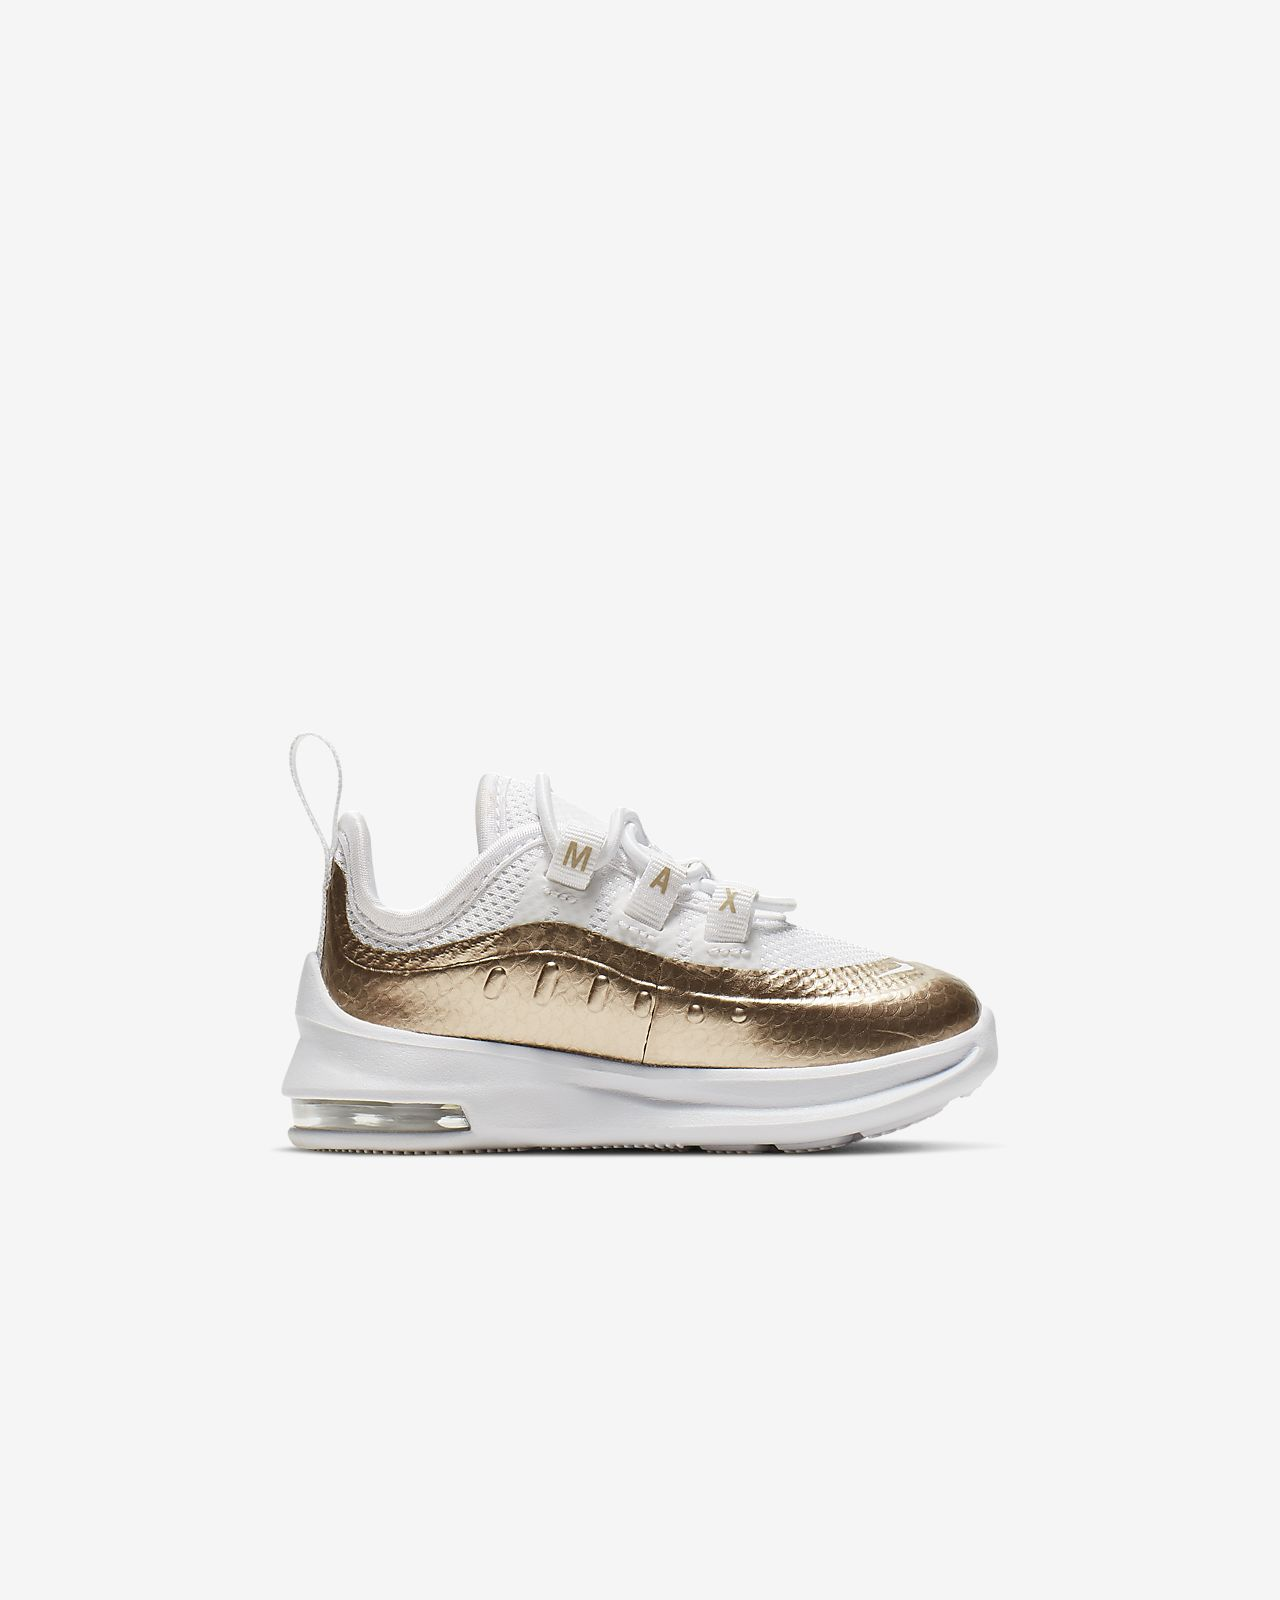 De Air Chaussures Max Femme Nike Running Axis 0Om8nyvNw